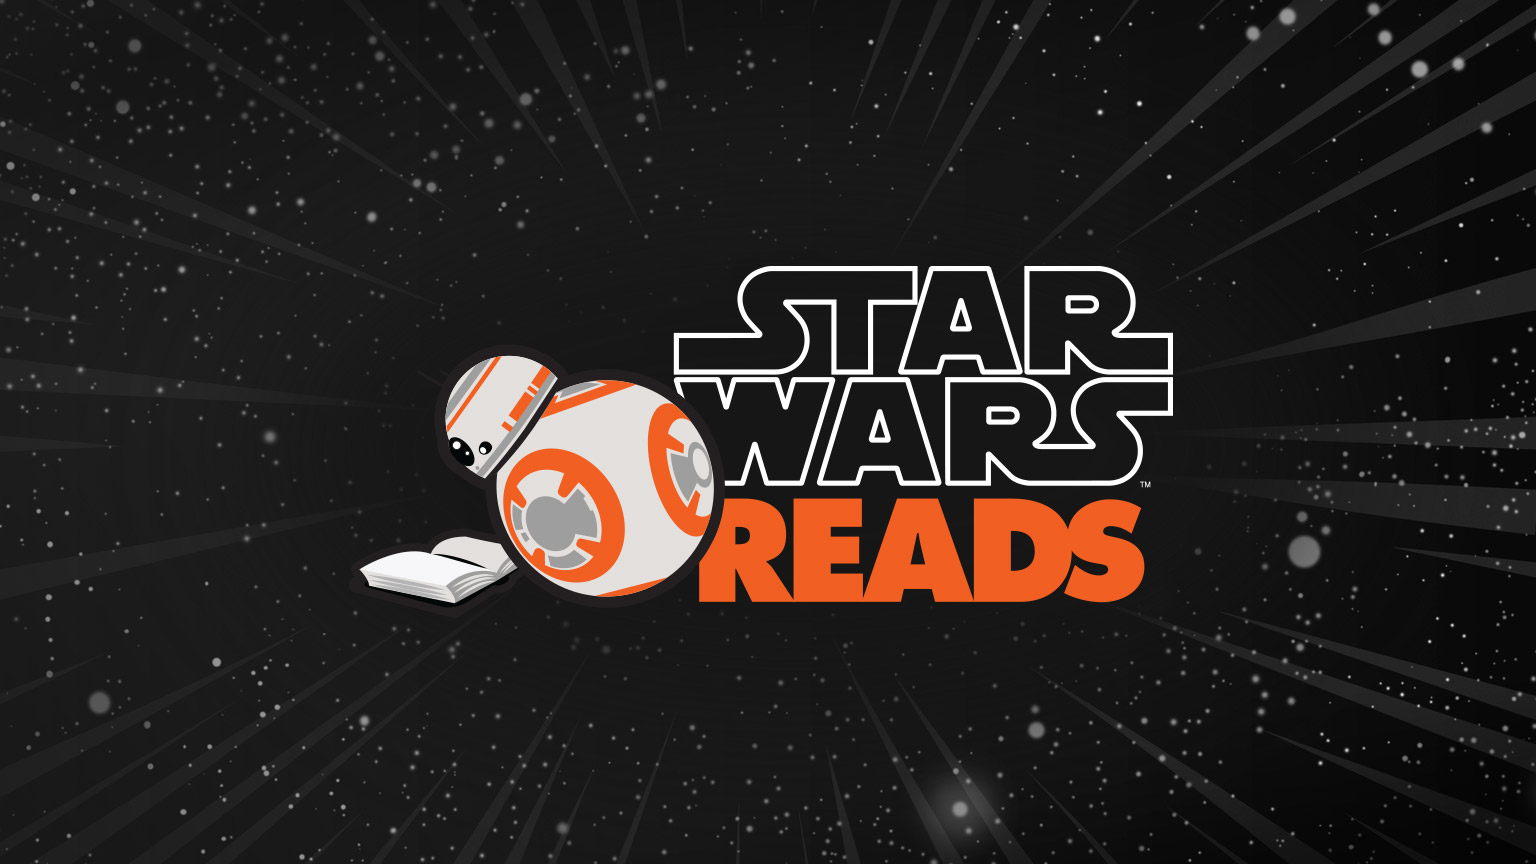 BB-8 reads a book next to the Star Wars Reads logo